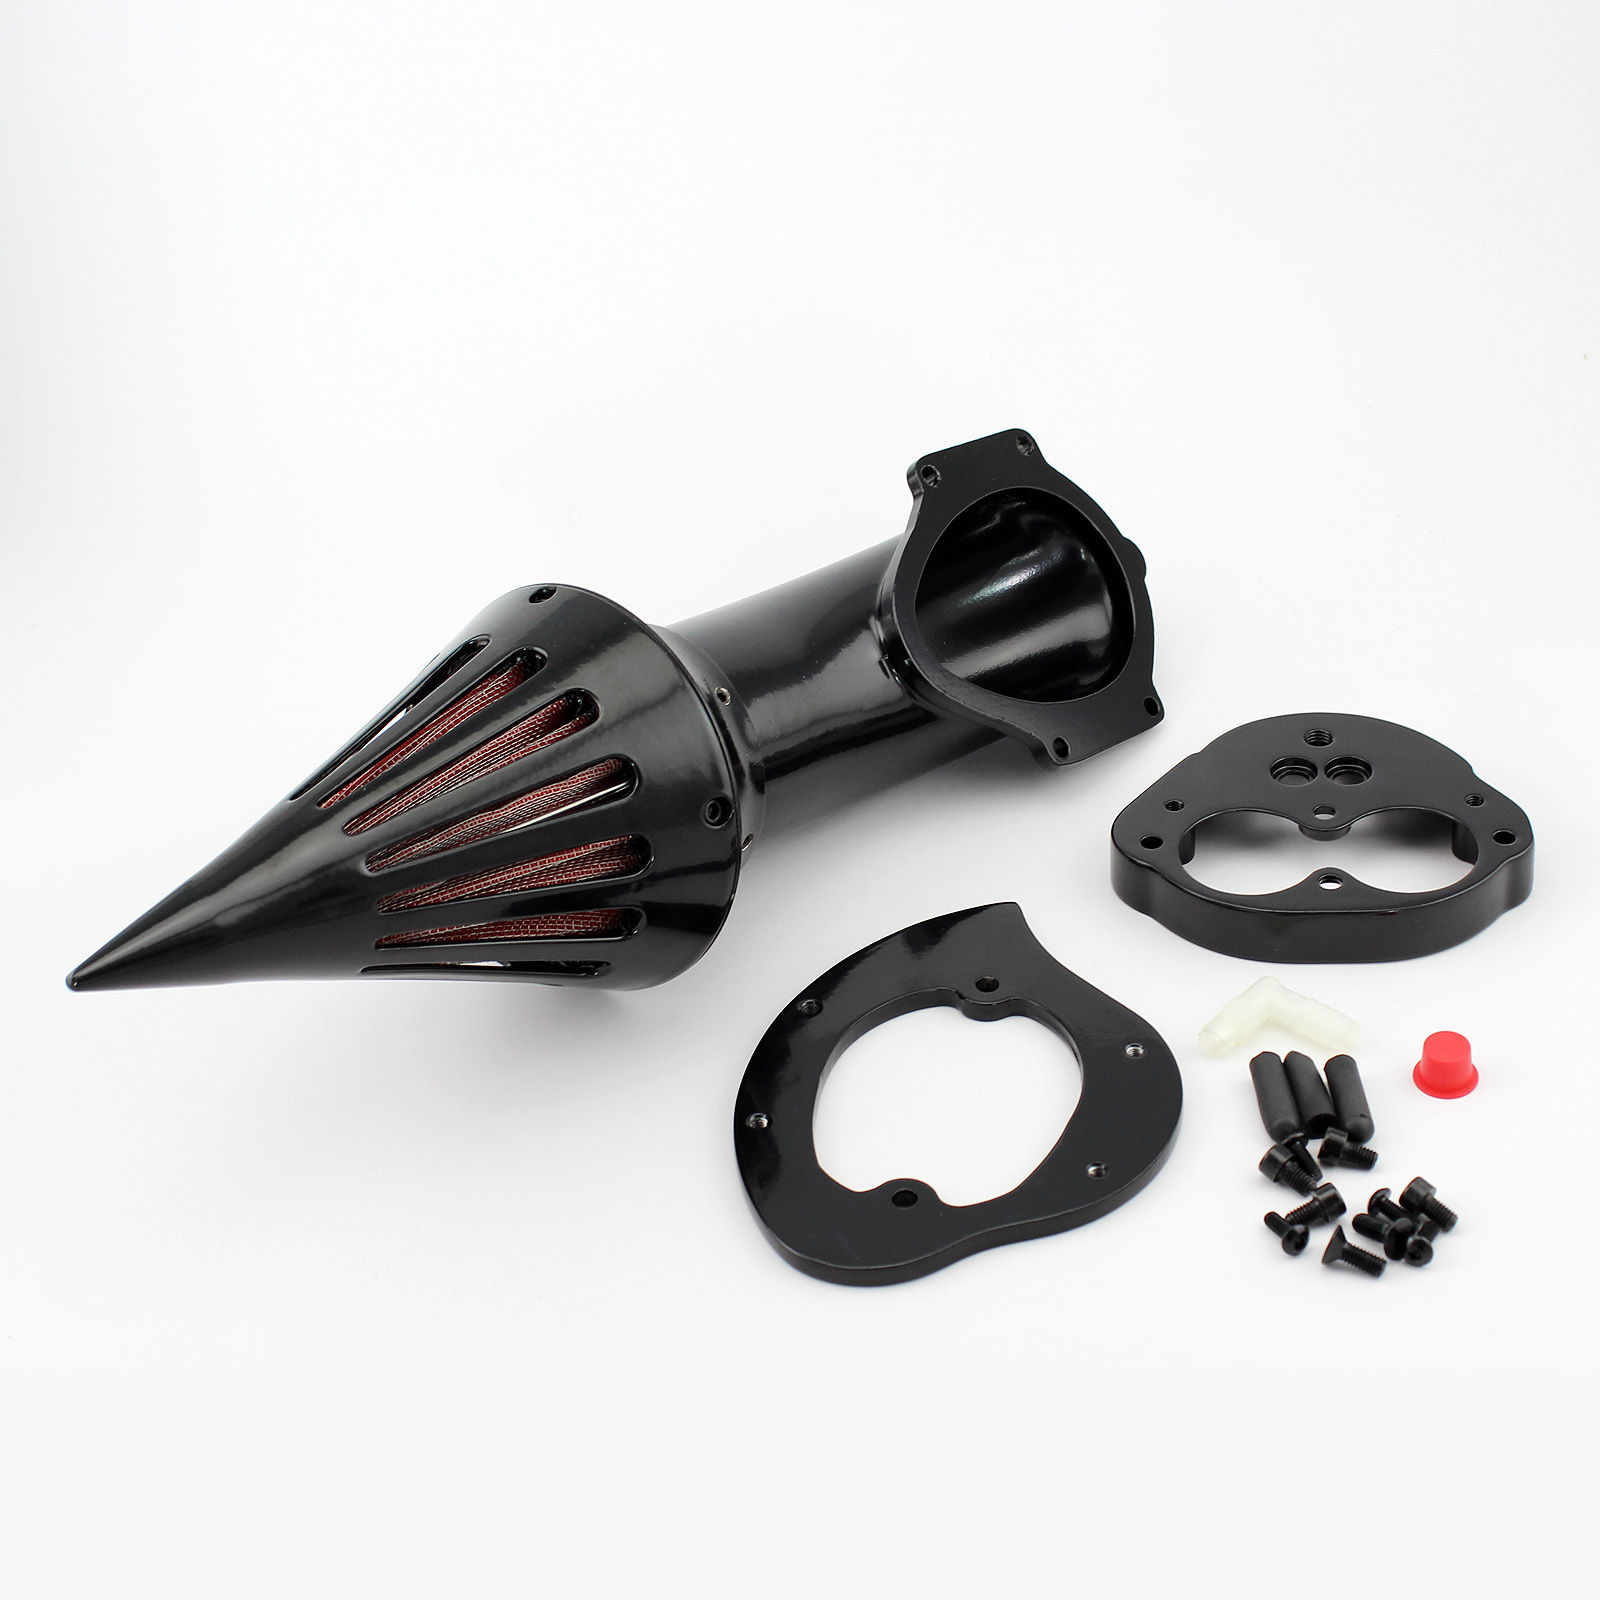 Фото Motorcycle Black Spike Air Cleaner Kits Intake Filter For Kawasaki Vulcan 1500 1600 Classic 2000-2012